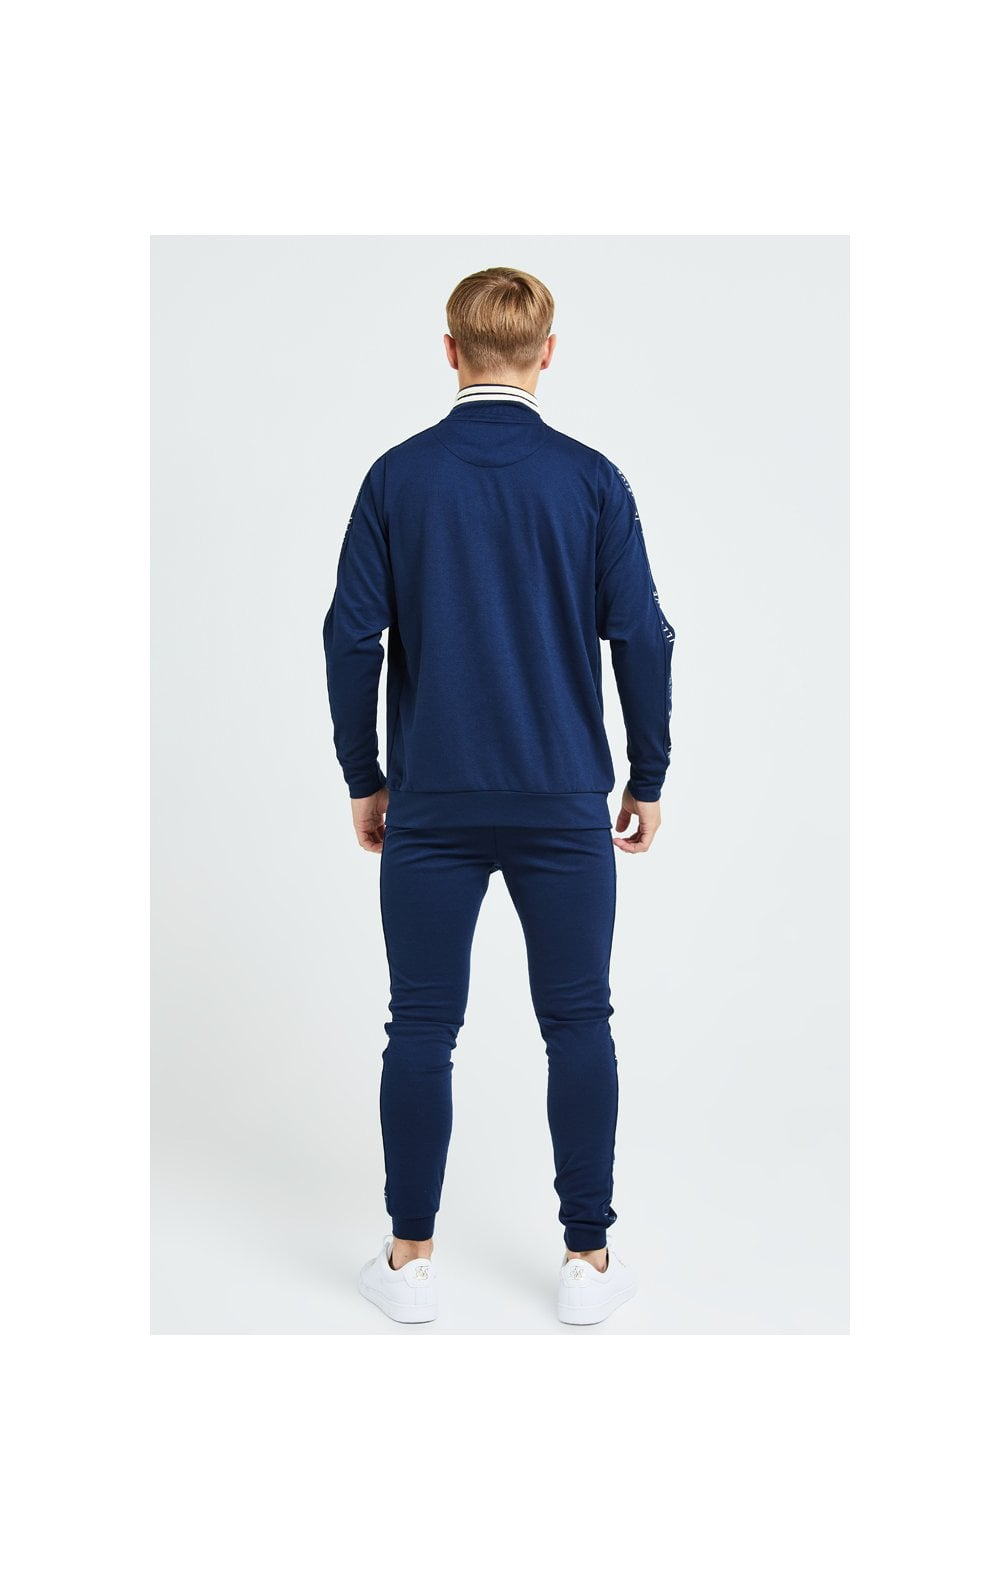 Illusive London Legacy Track Top - Navy & Cream (6)